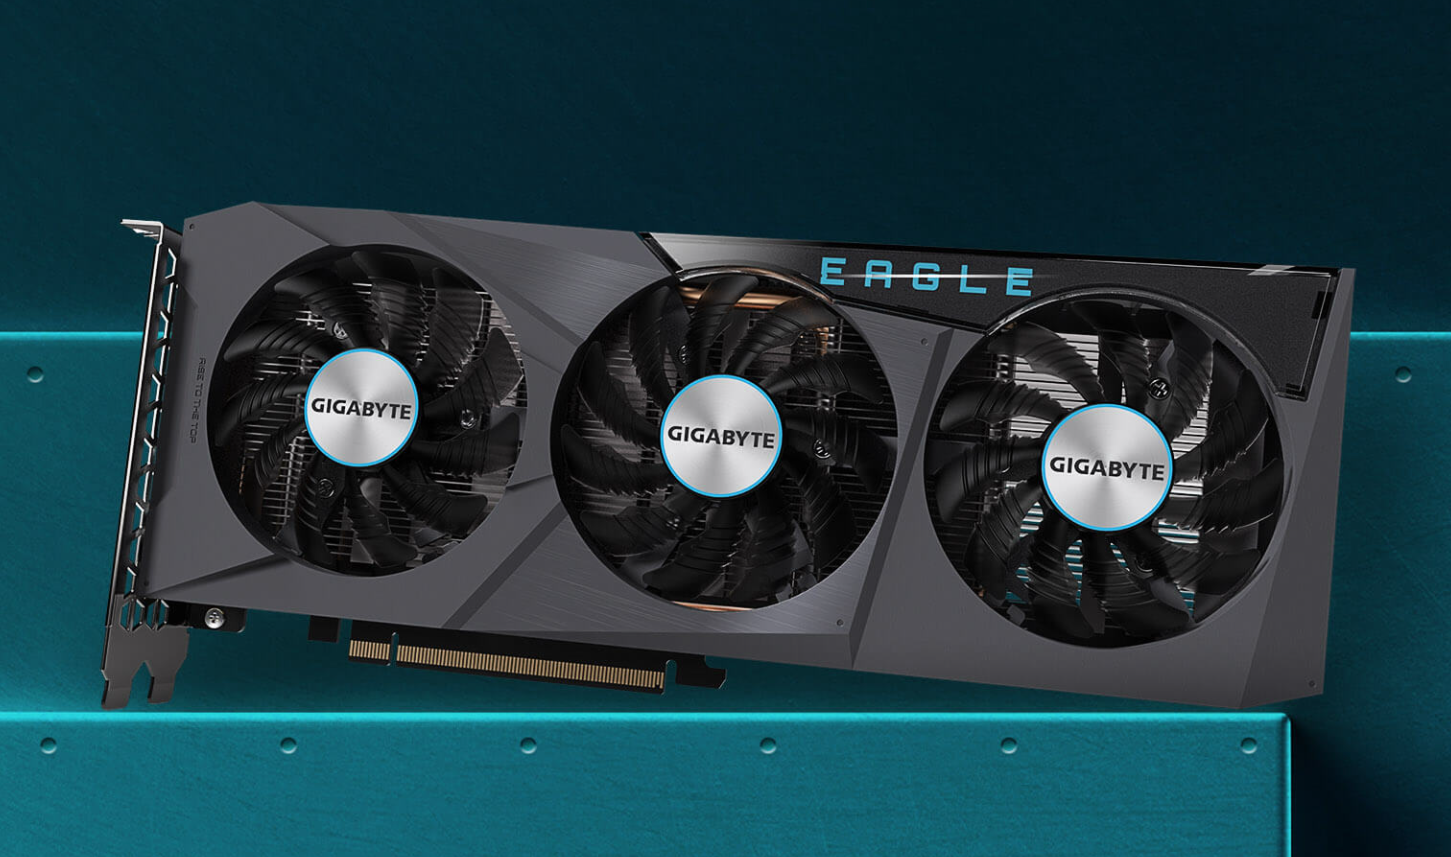 gigabyte-radeon-rx-6600-eagle-non-xt-graphics-card-leaks-out,-features-8-gb-gddr6-memory-&-navi-23-gpu